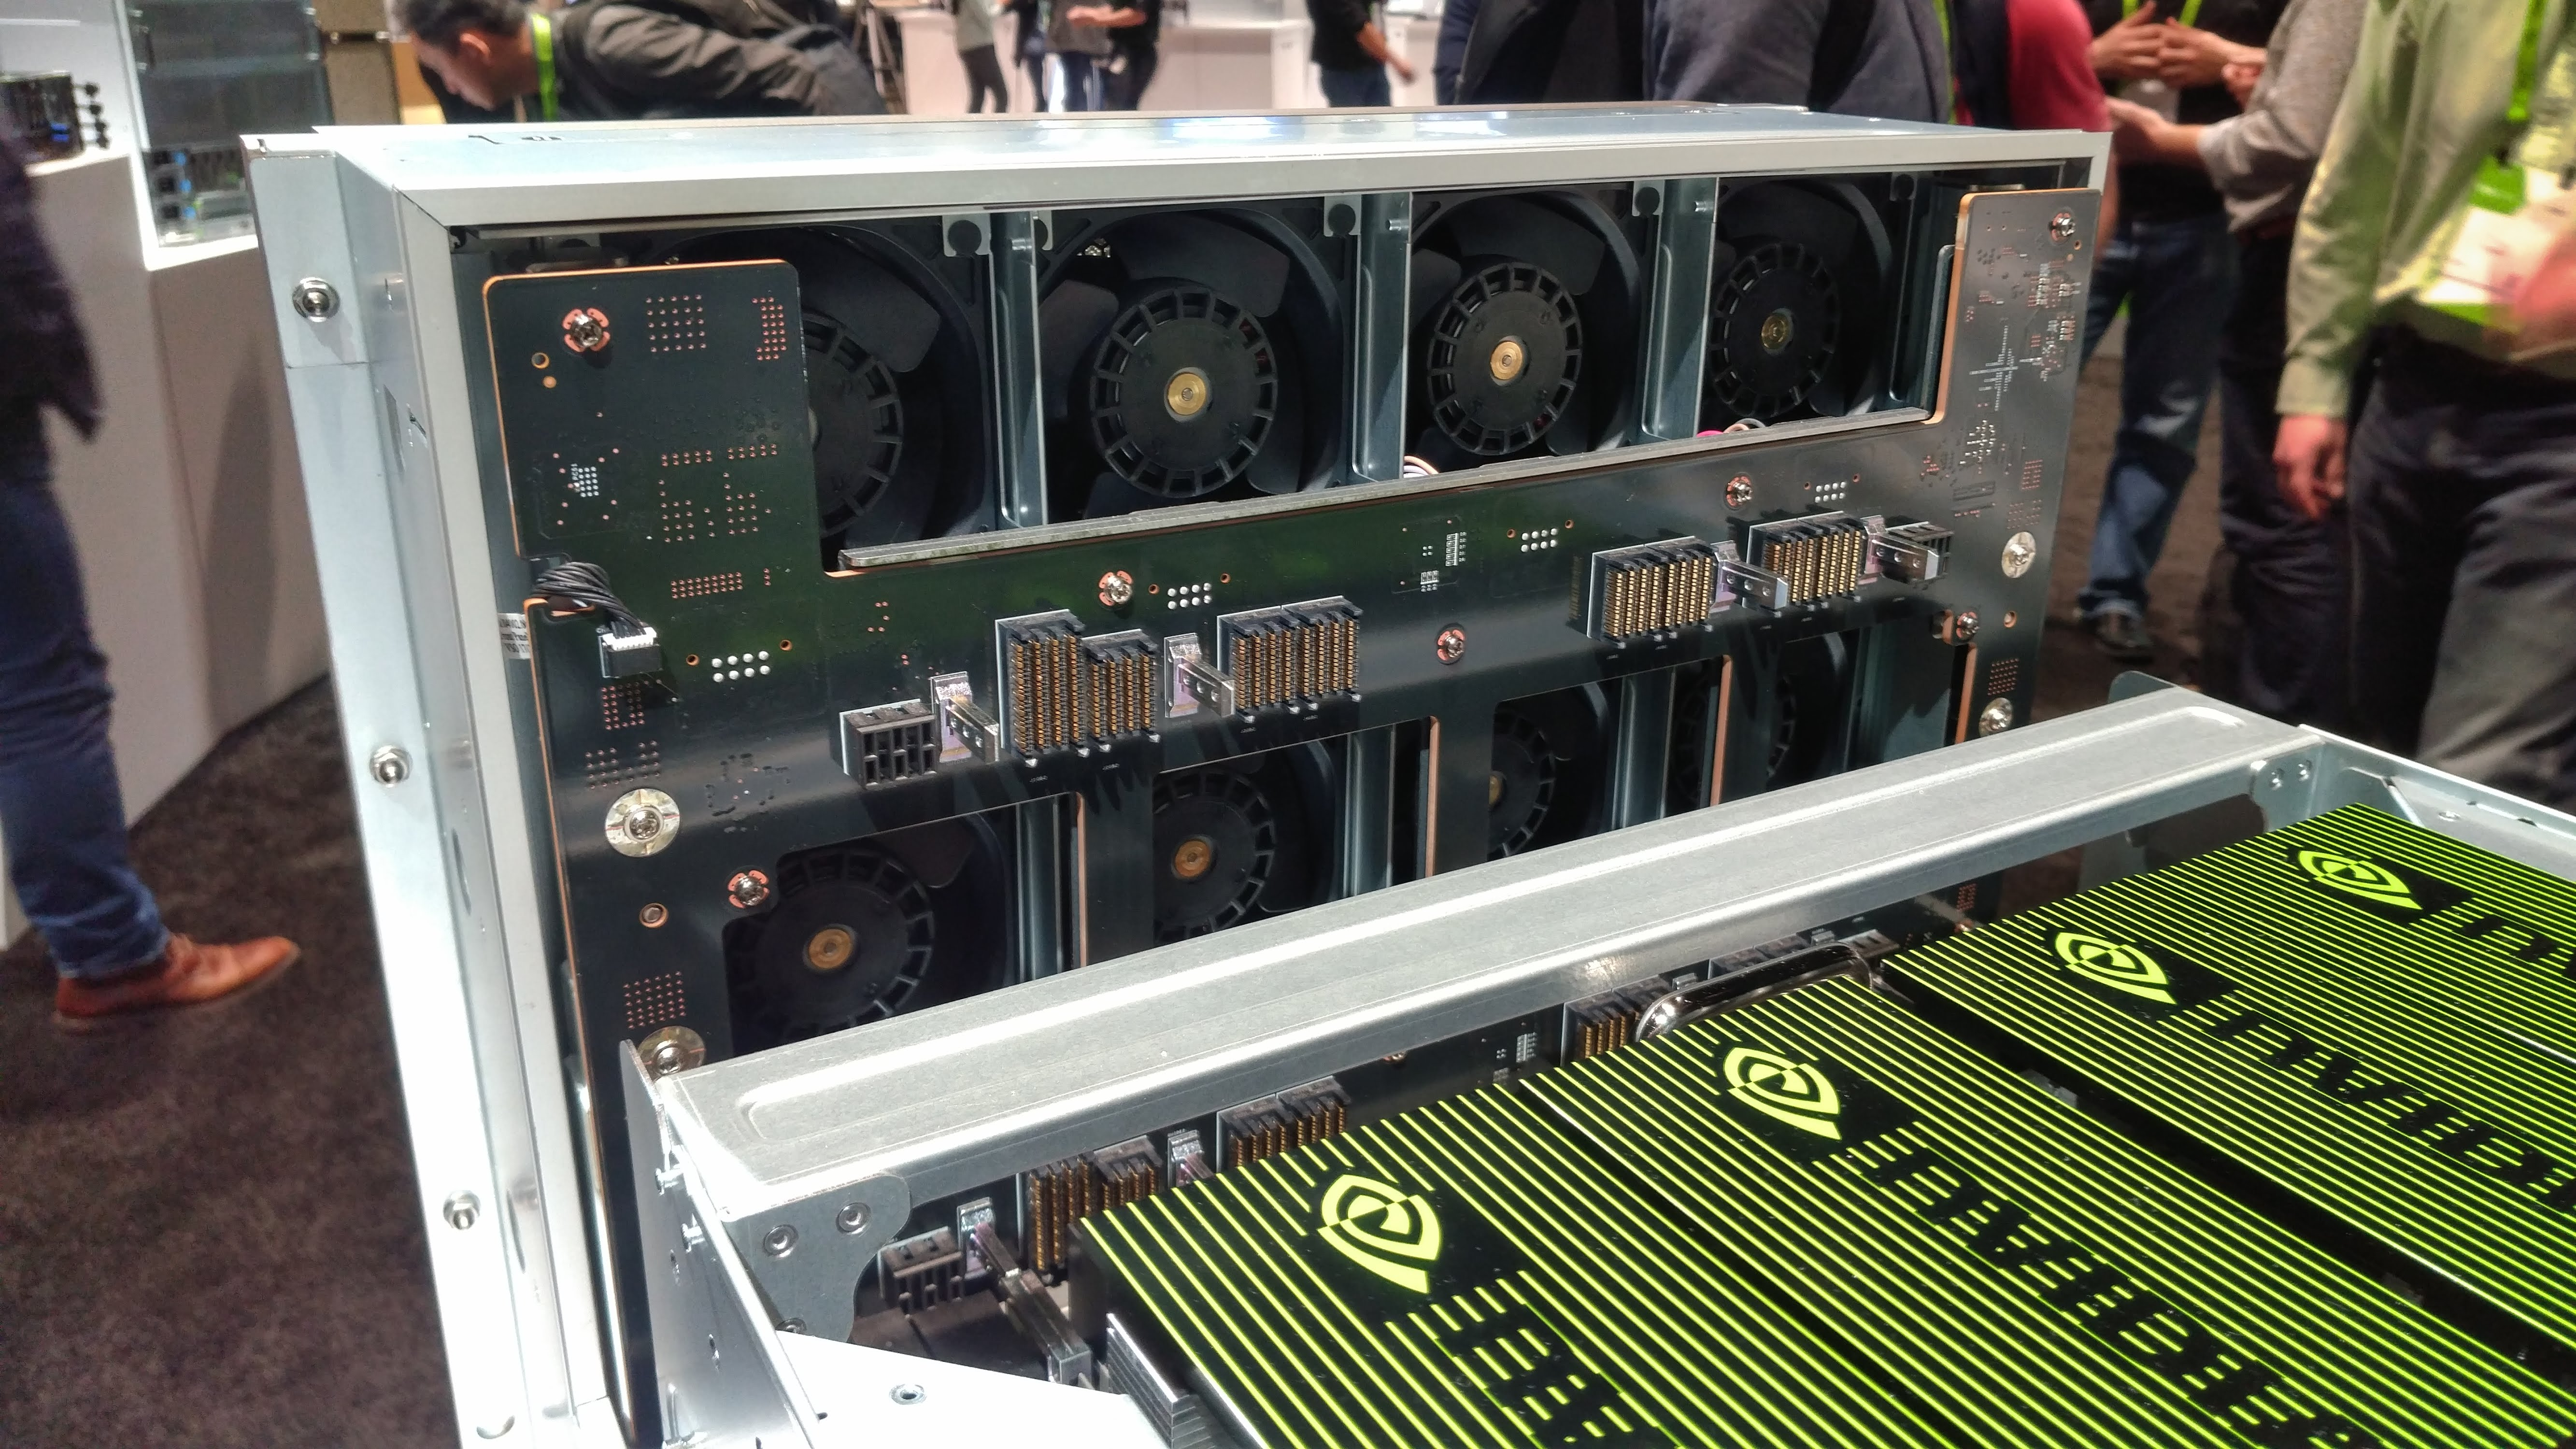 Cooling fans of the Nvidia DGX-2 system on display at GTC 2018